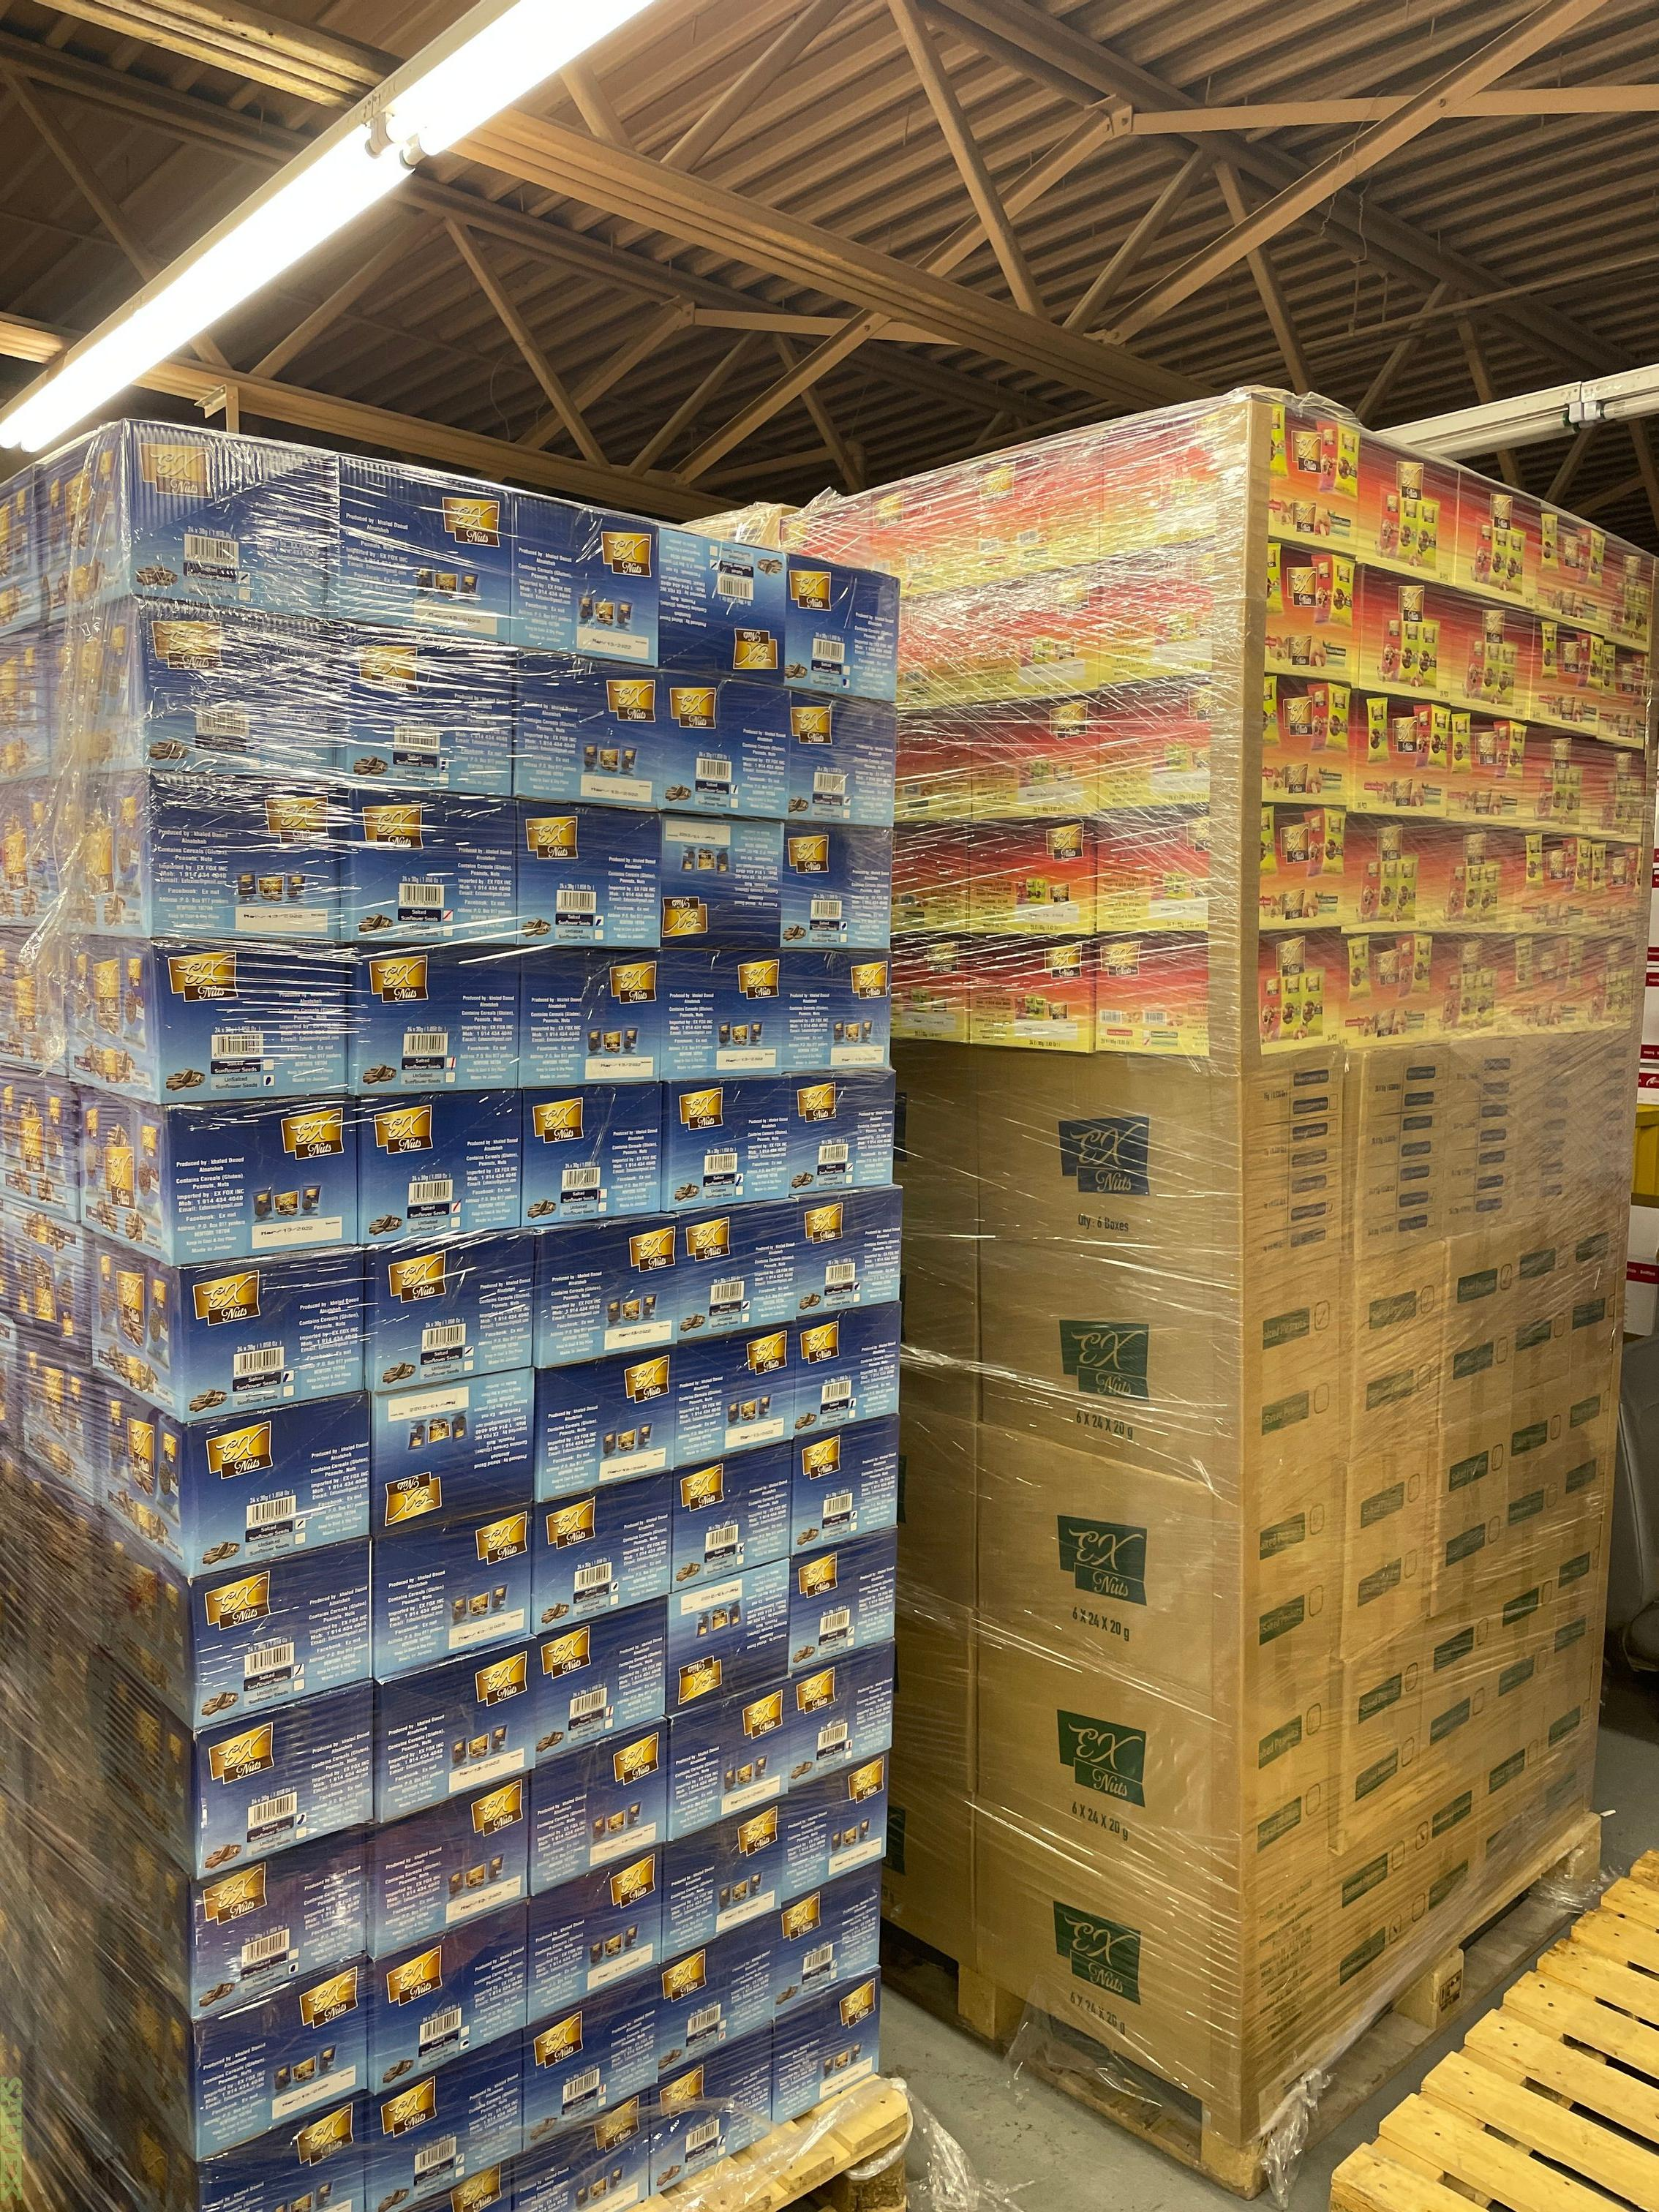 Sunflower Seeds, Peanut Unsalted/salted, Mixed Nuts, Almond, and Pumpkin Seeds (4,403 Cases)